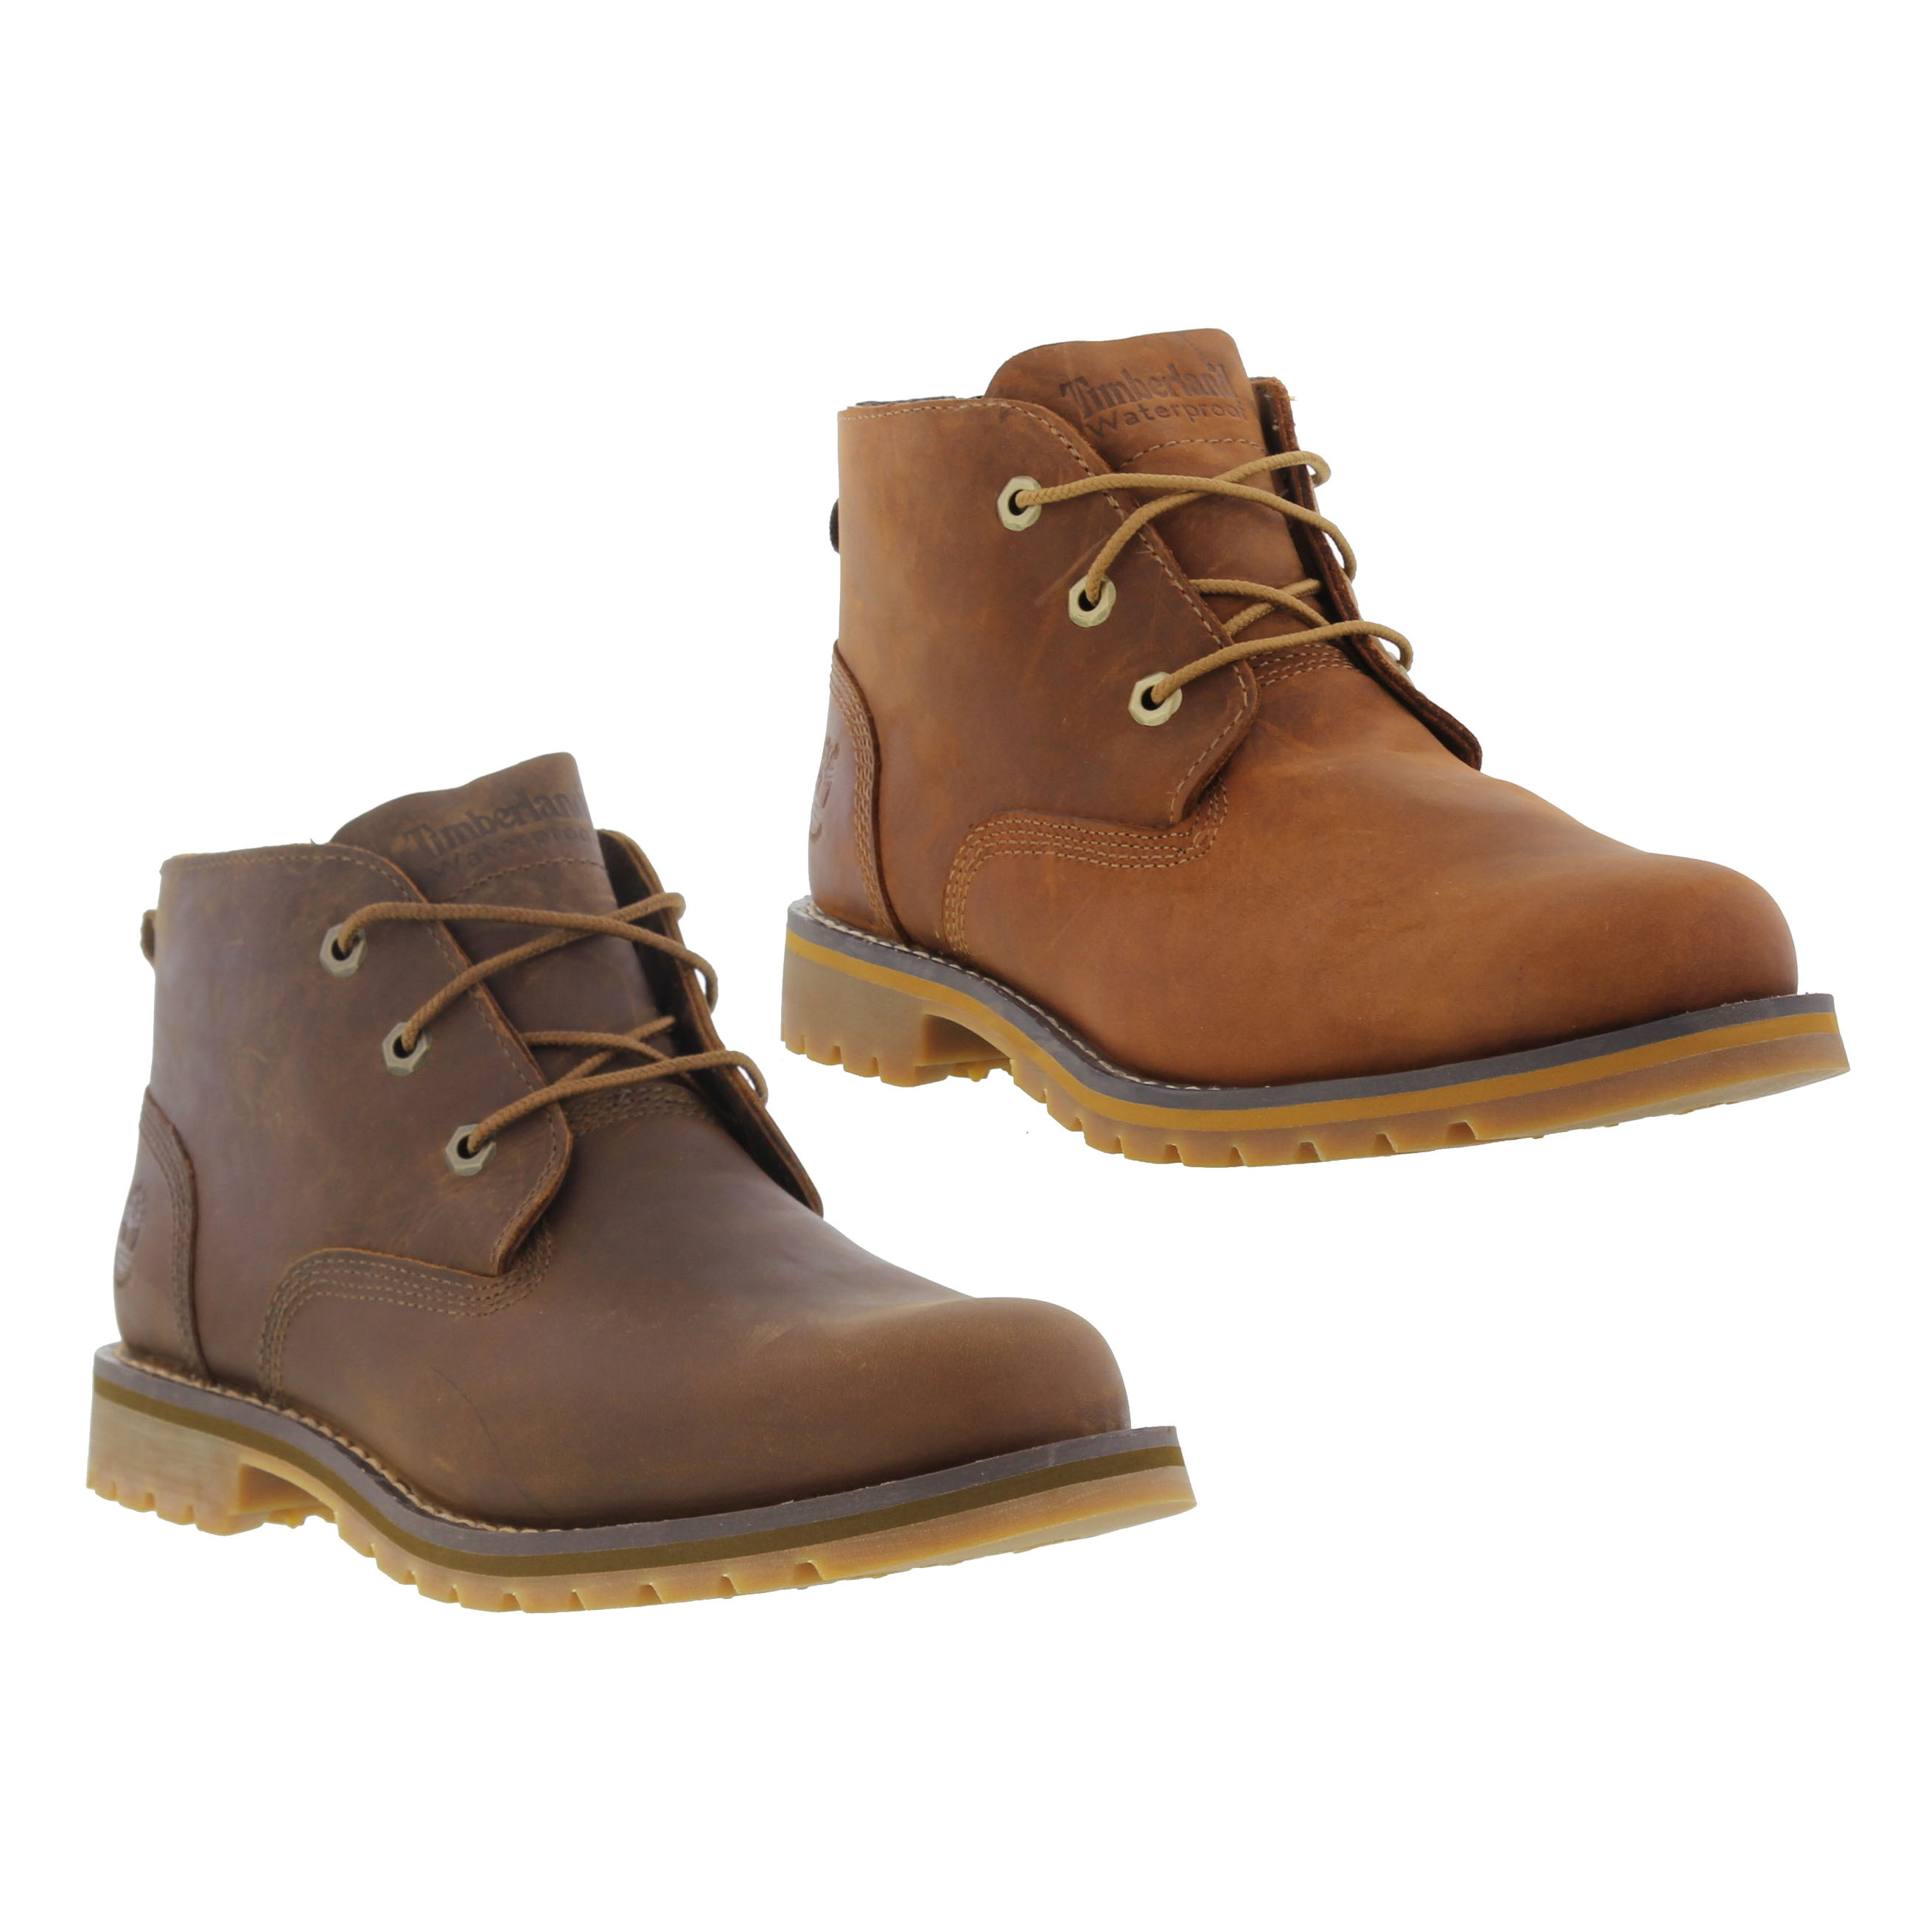 485076770ef Details about Timberland Larchmont Chukka Mens Waterproof Desert Ankle  Boots Size UK 8-11